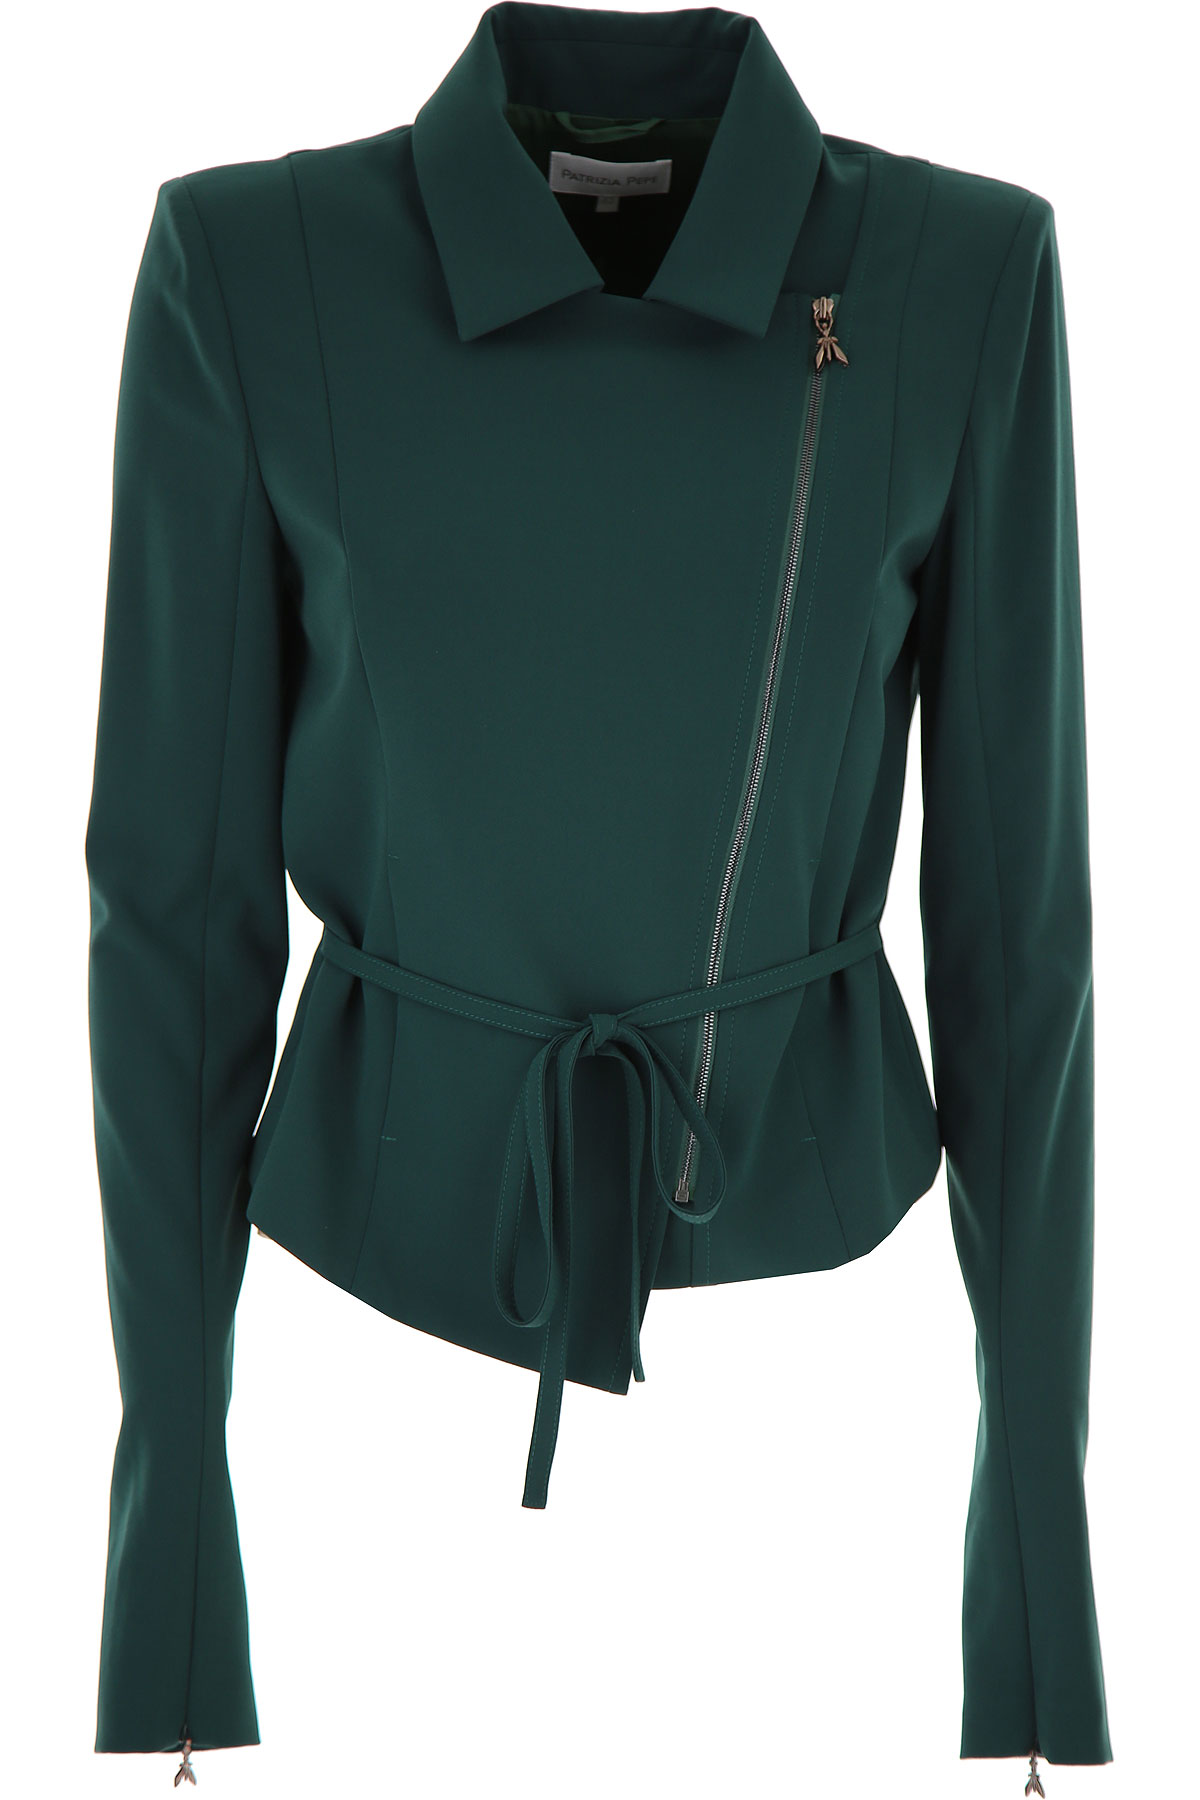 Patrizia Pepe Jacket for Women On Sale, Green, polyester, 2019, 4 6